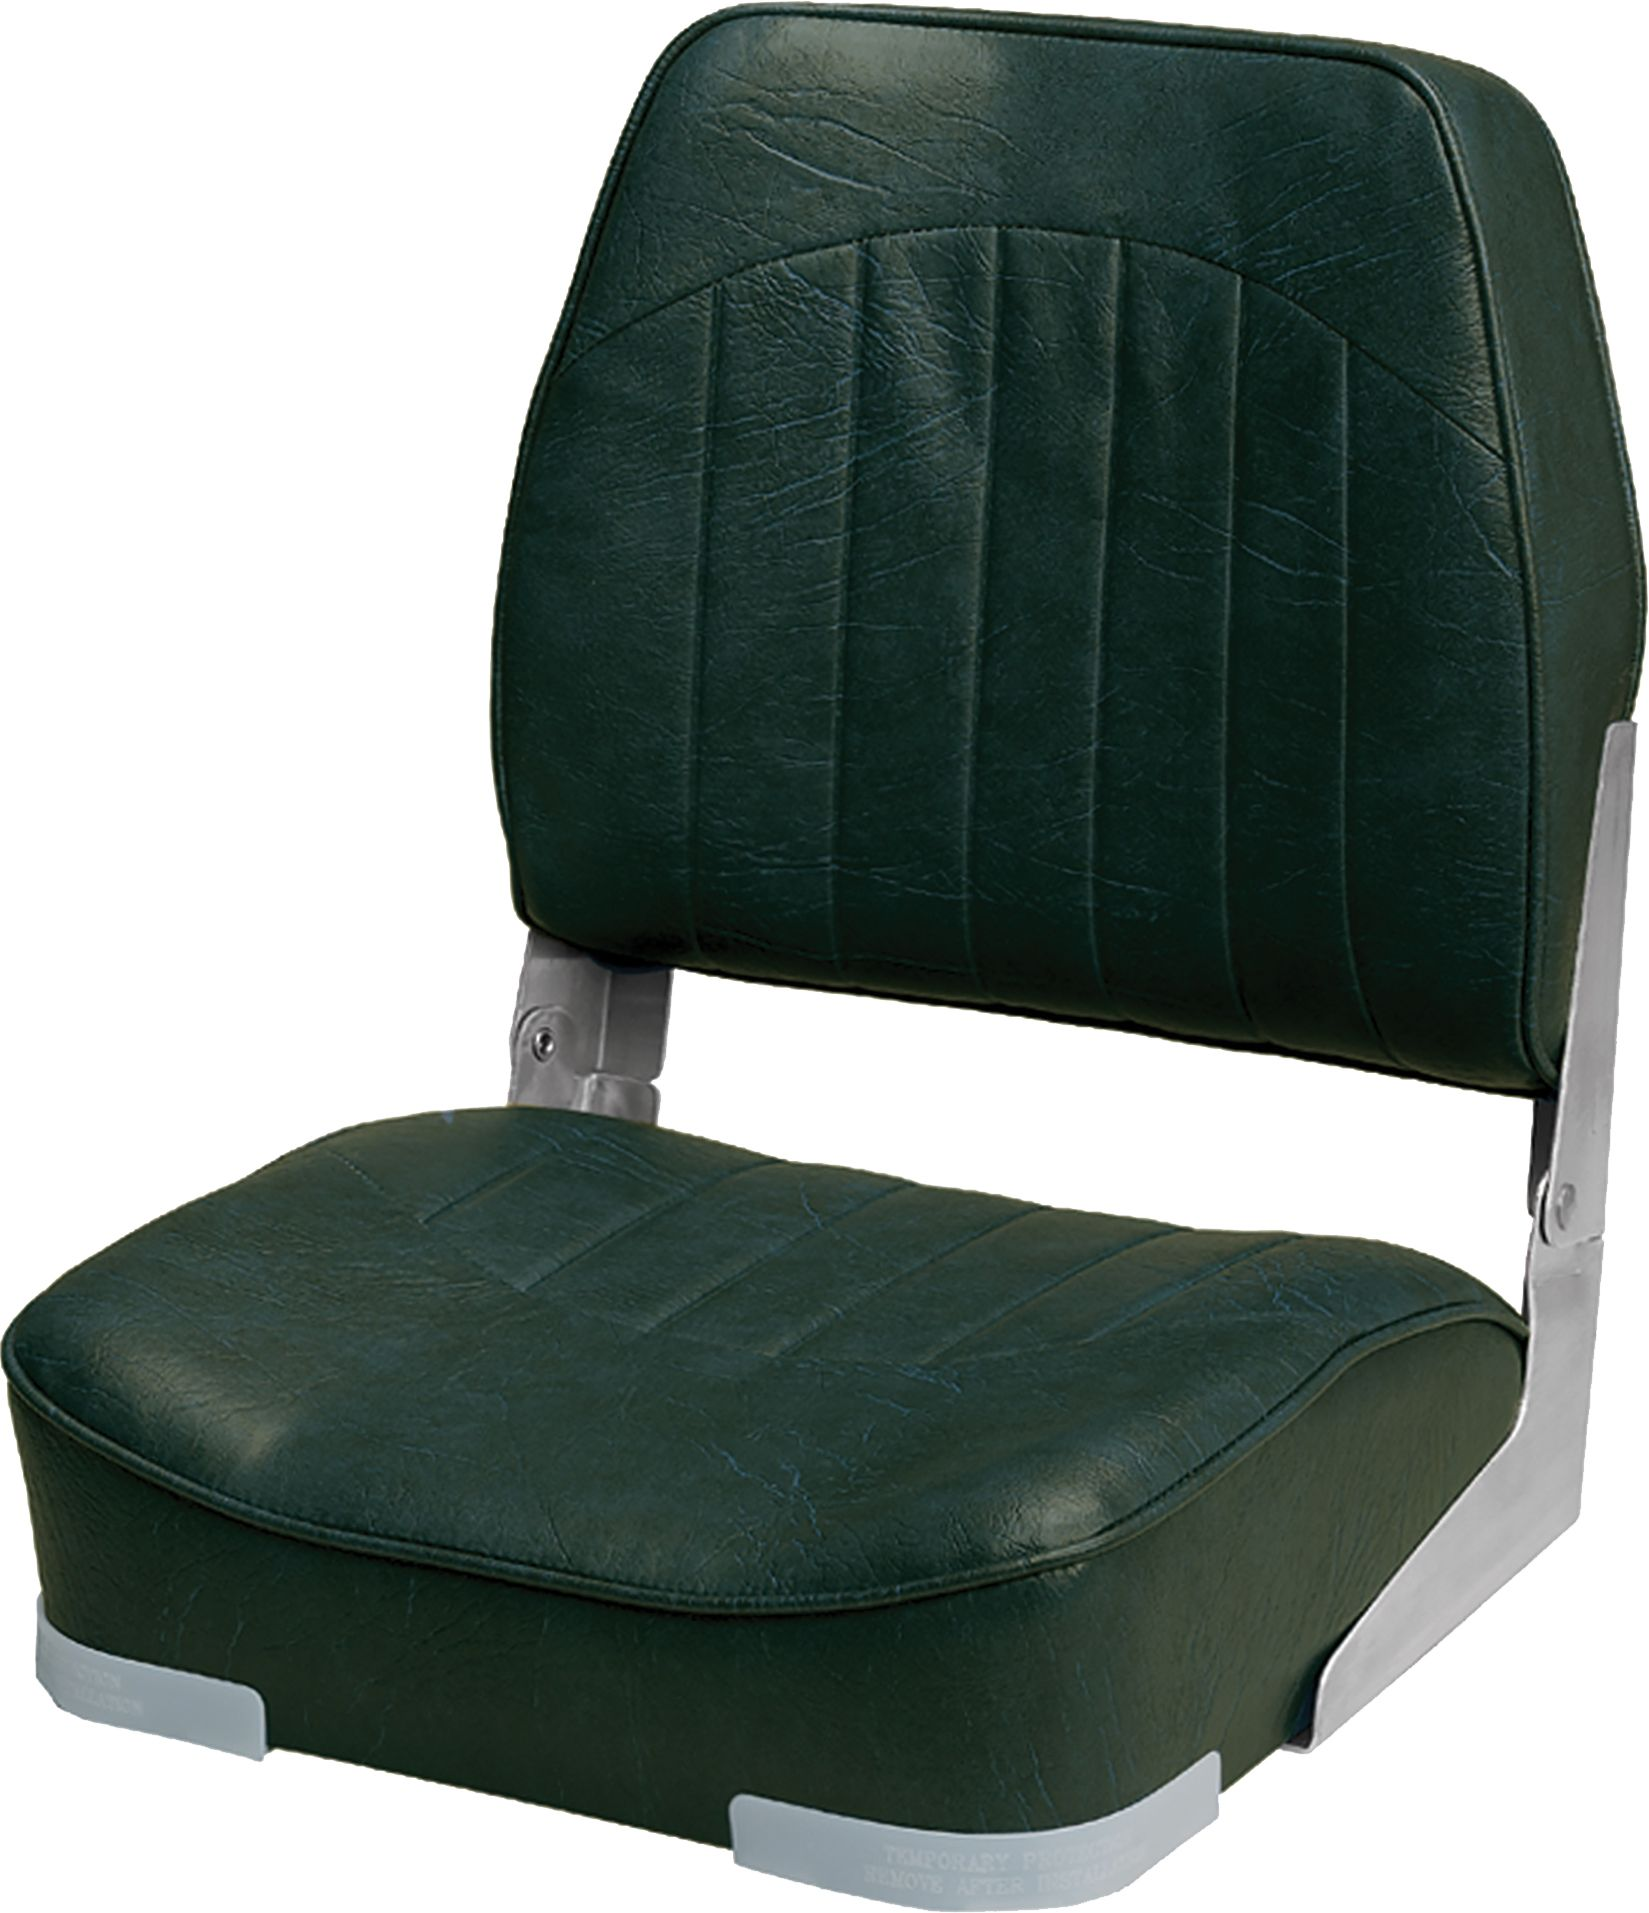 chair steering chairs cushion folding removable militariart console toy for seat com bench center jon boat diy to box